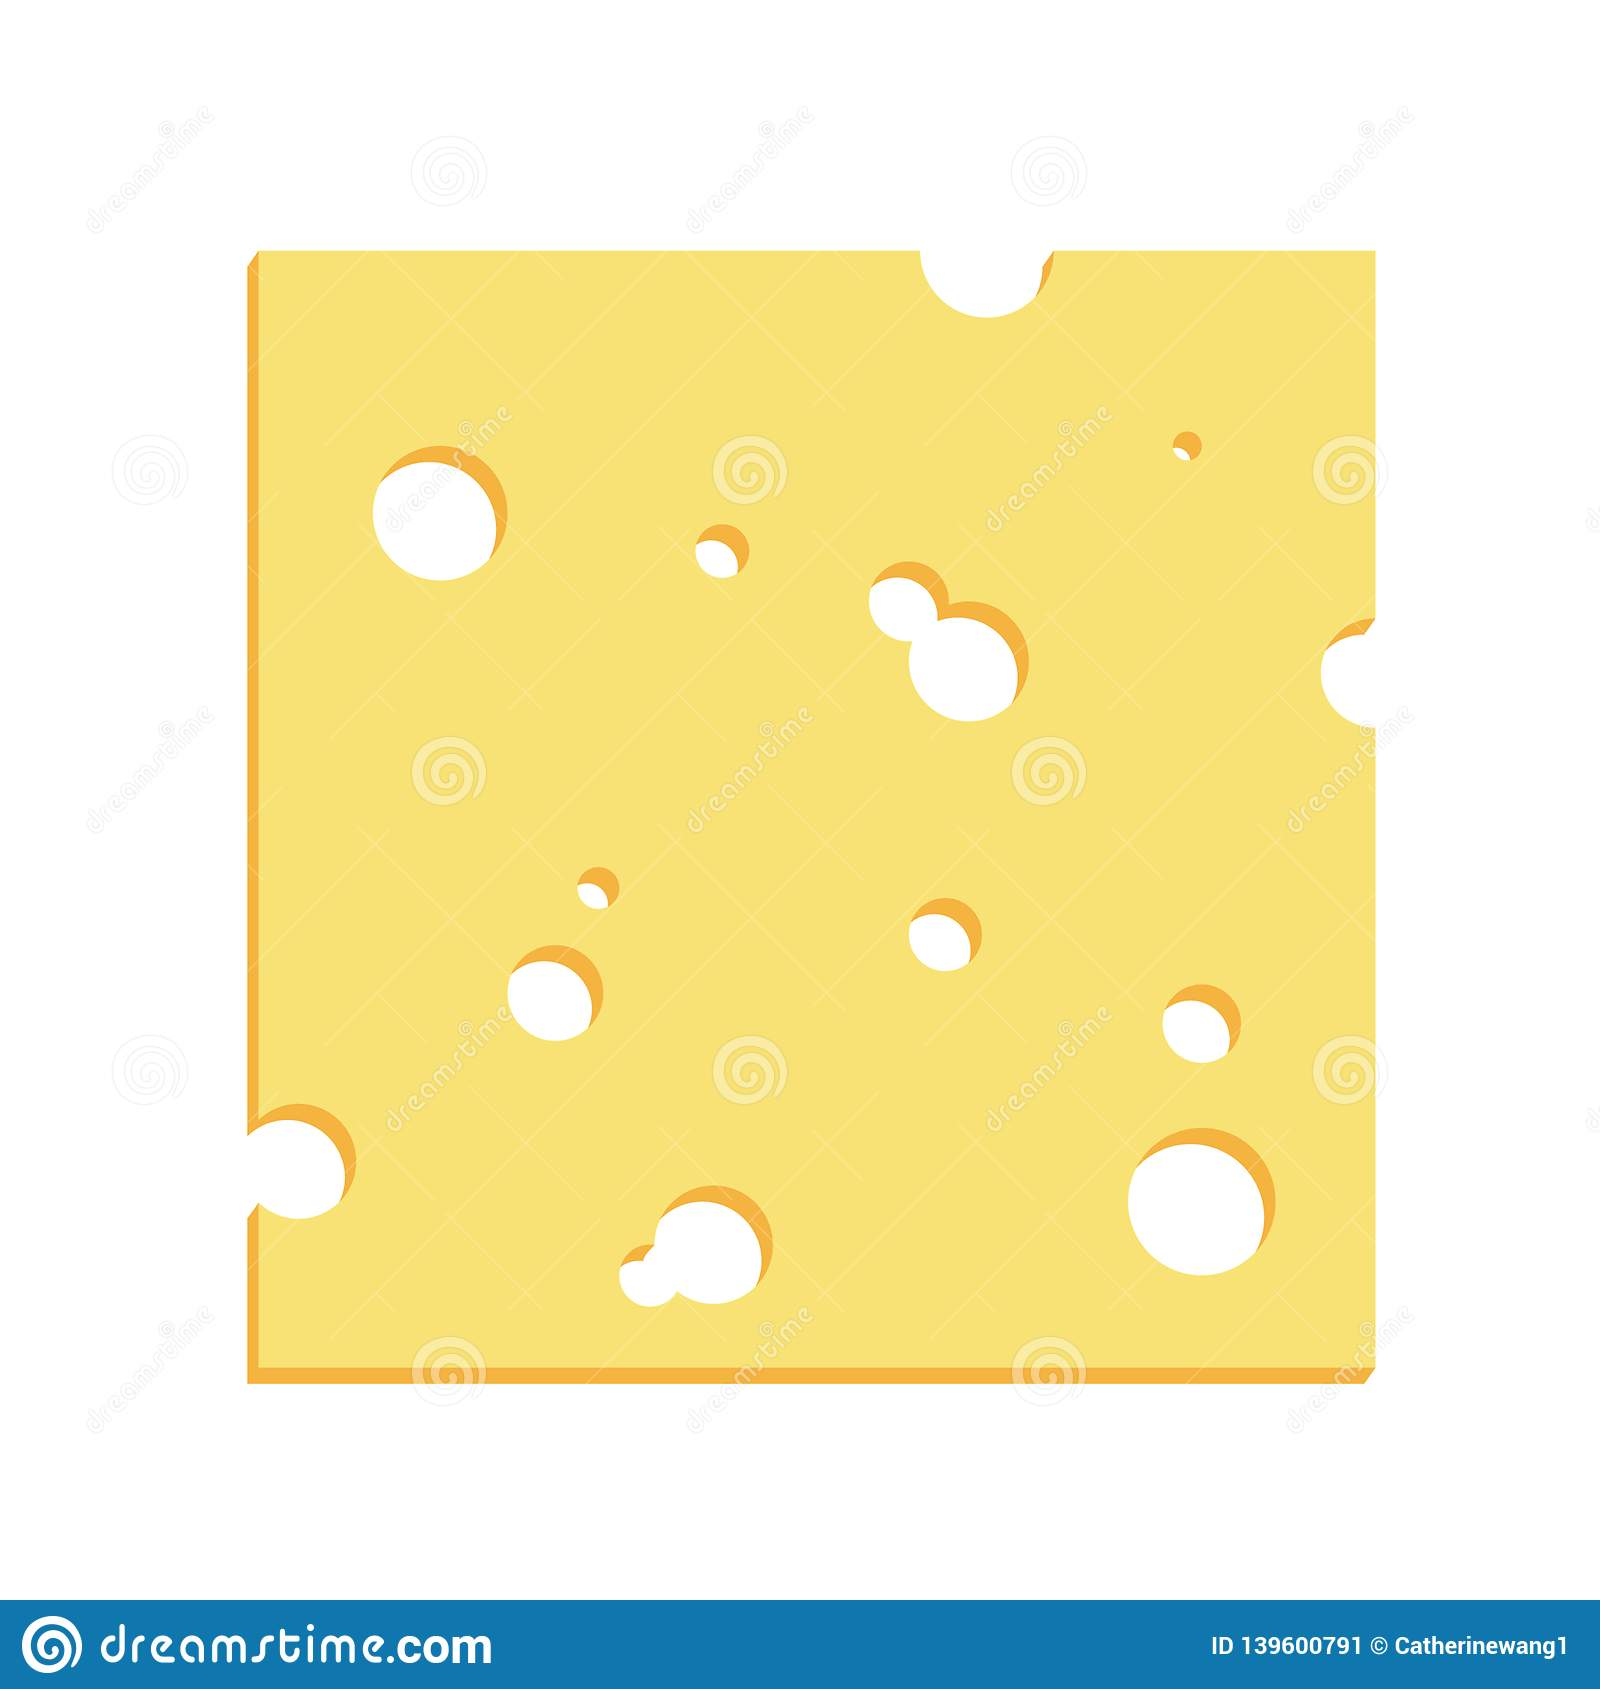 Cheese Square Slice With Holes Illustration